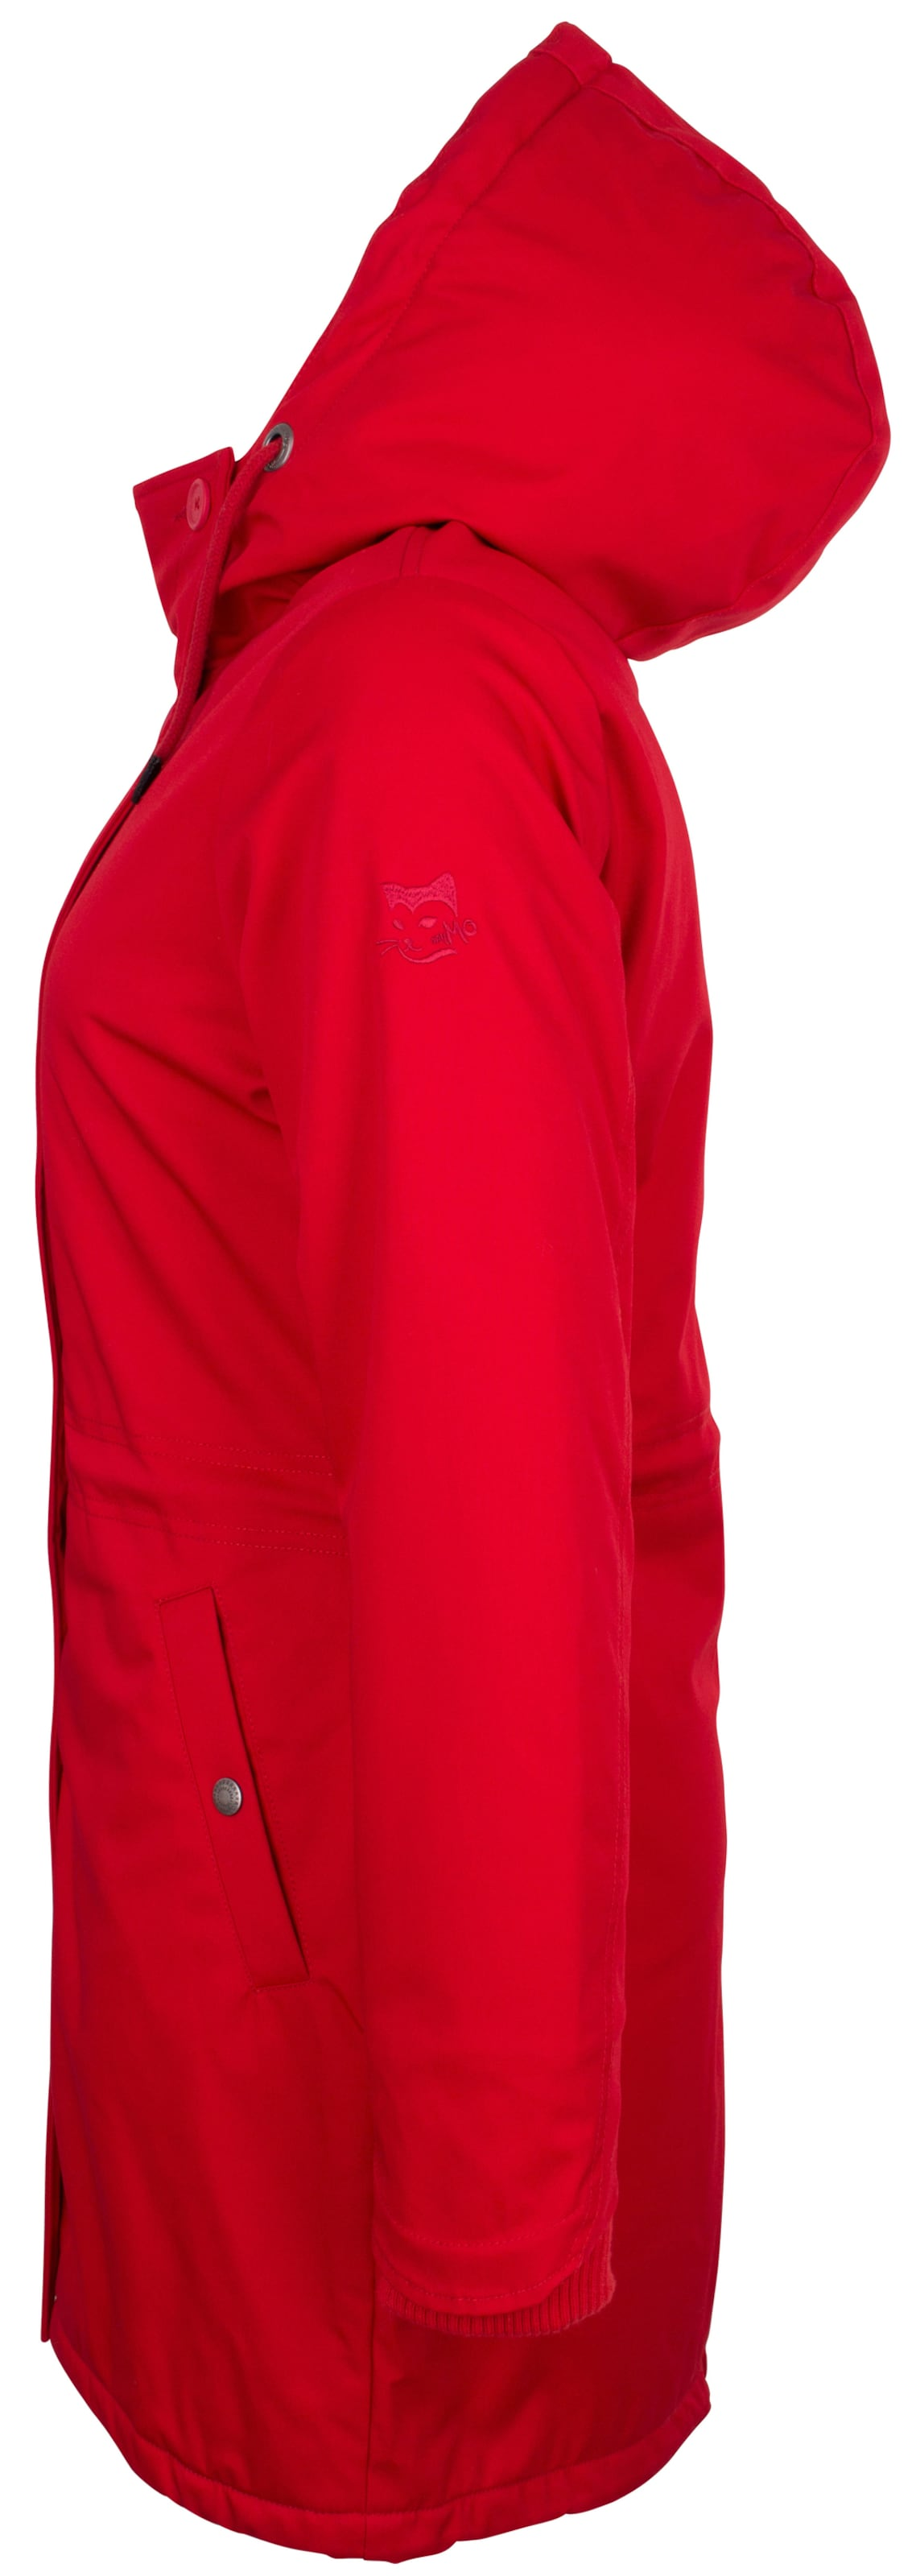 In Rouge Rouge MymoParka In D'hiver D'hiver MymoParka MymoParka In D'hiver Rouge lKF1cuTJ3